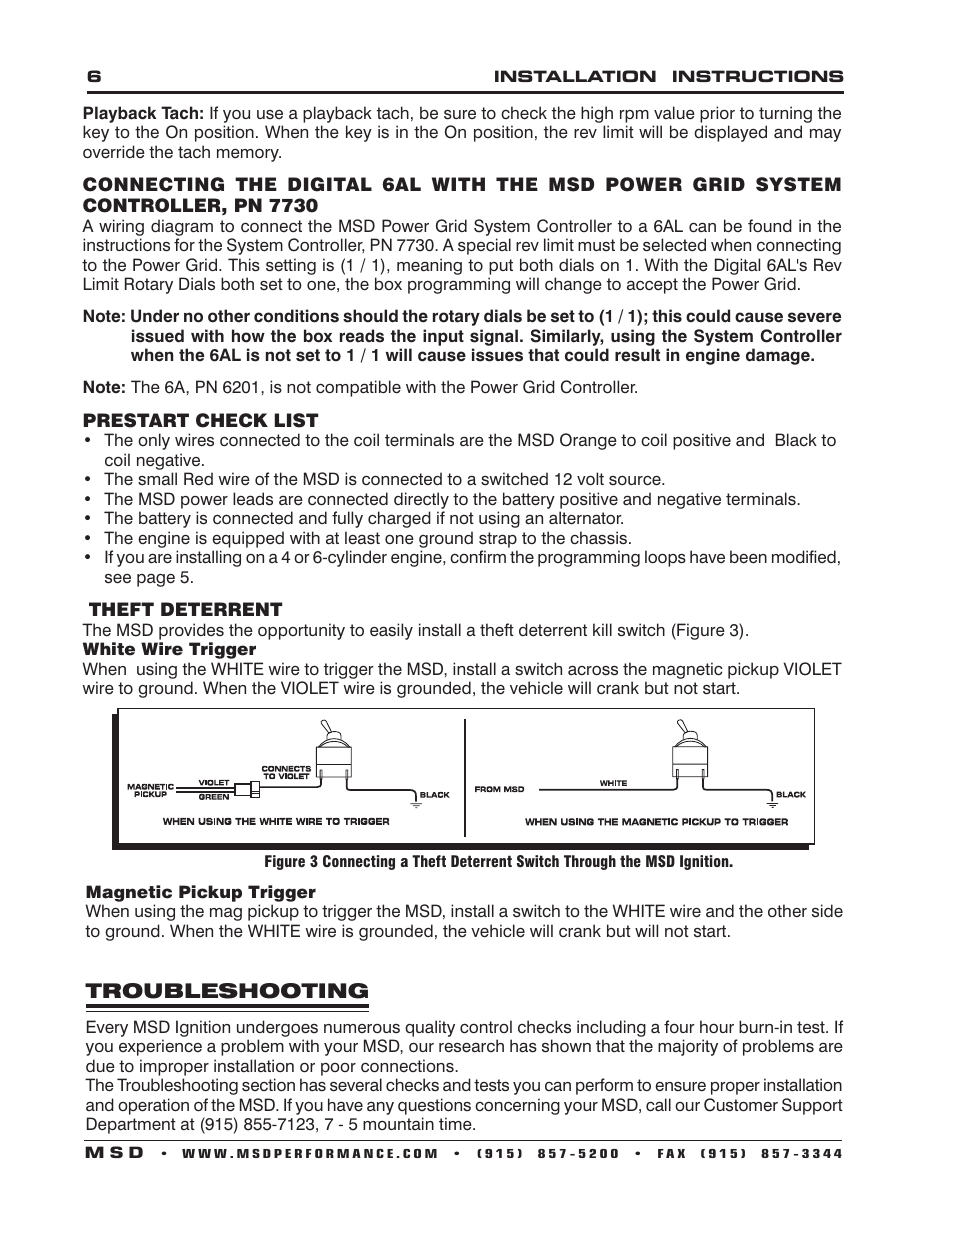 msd 6201 digital 6a ignition control user manual page 6 20 msd 6201 digital 6a ignition control user manual page 6 20 also for 6201 digital 6a ignition control installation installation